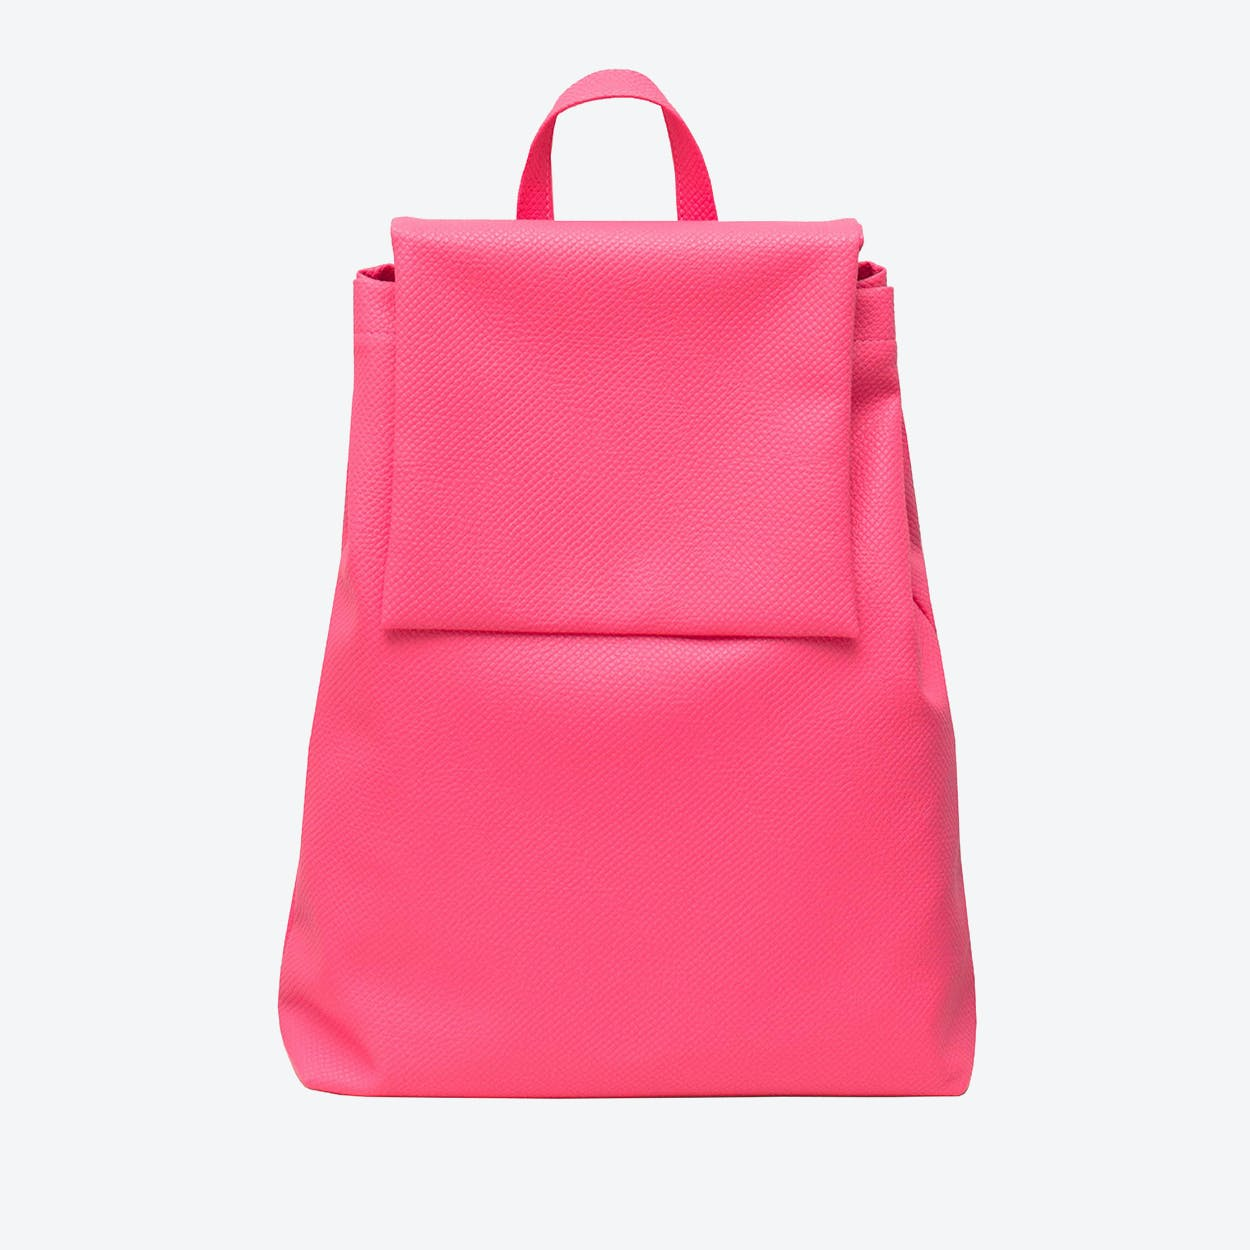 Boo Backpack in Pink